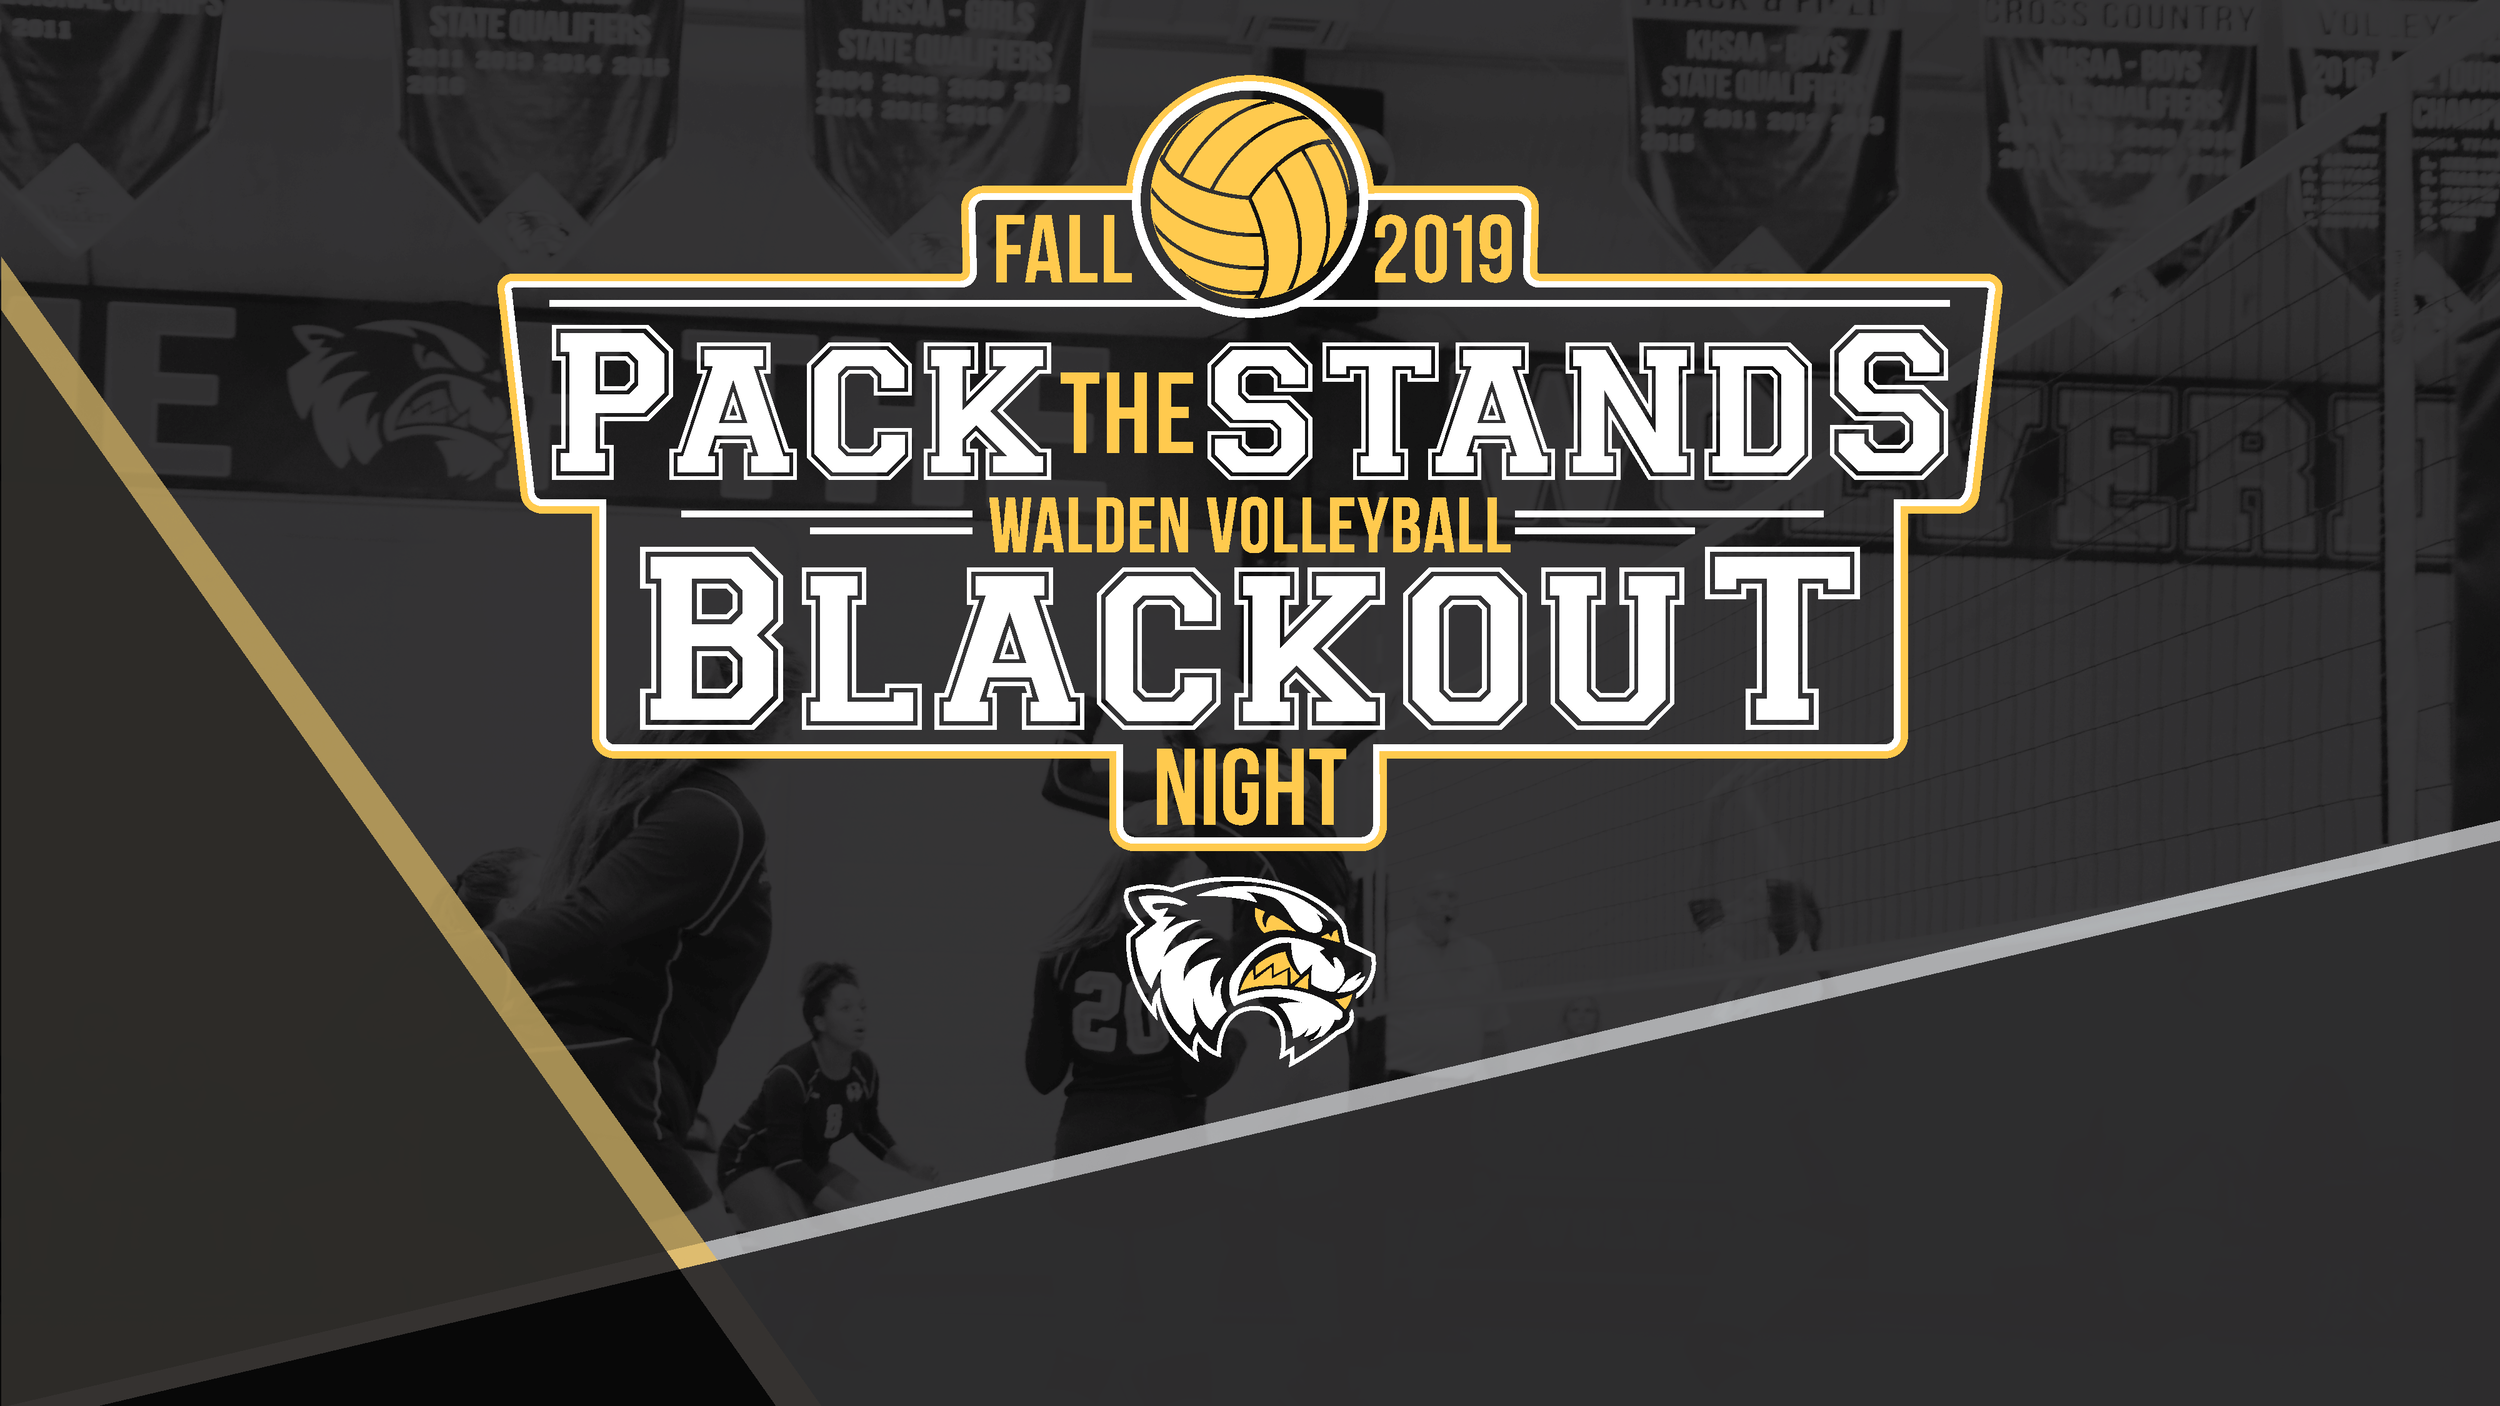 Pack the Stands_Blackout_Volleyball matches2.png